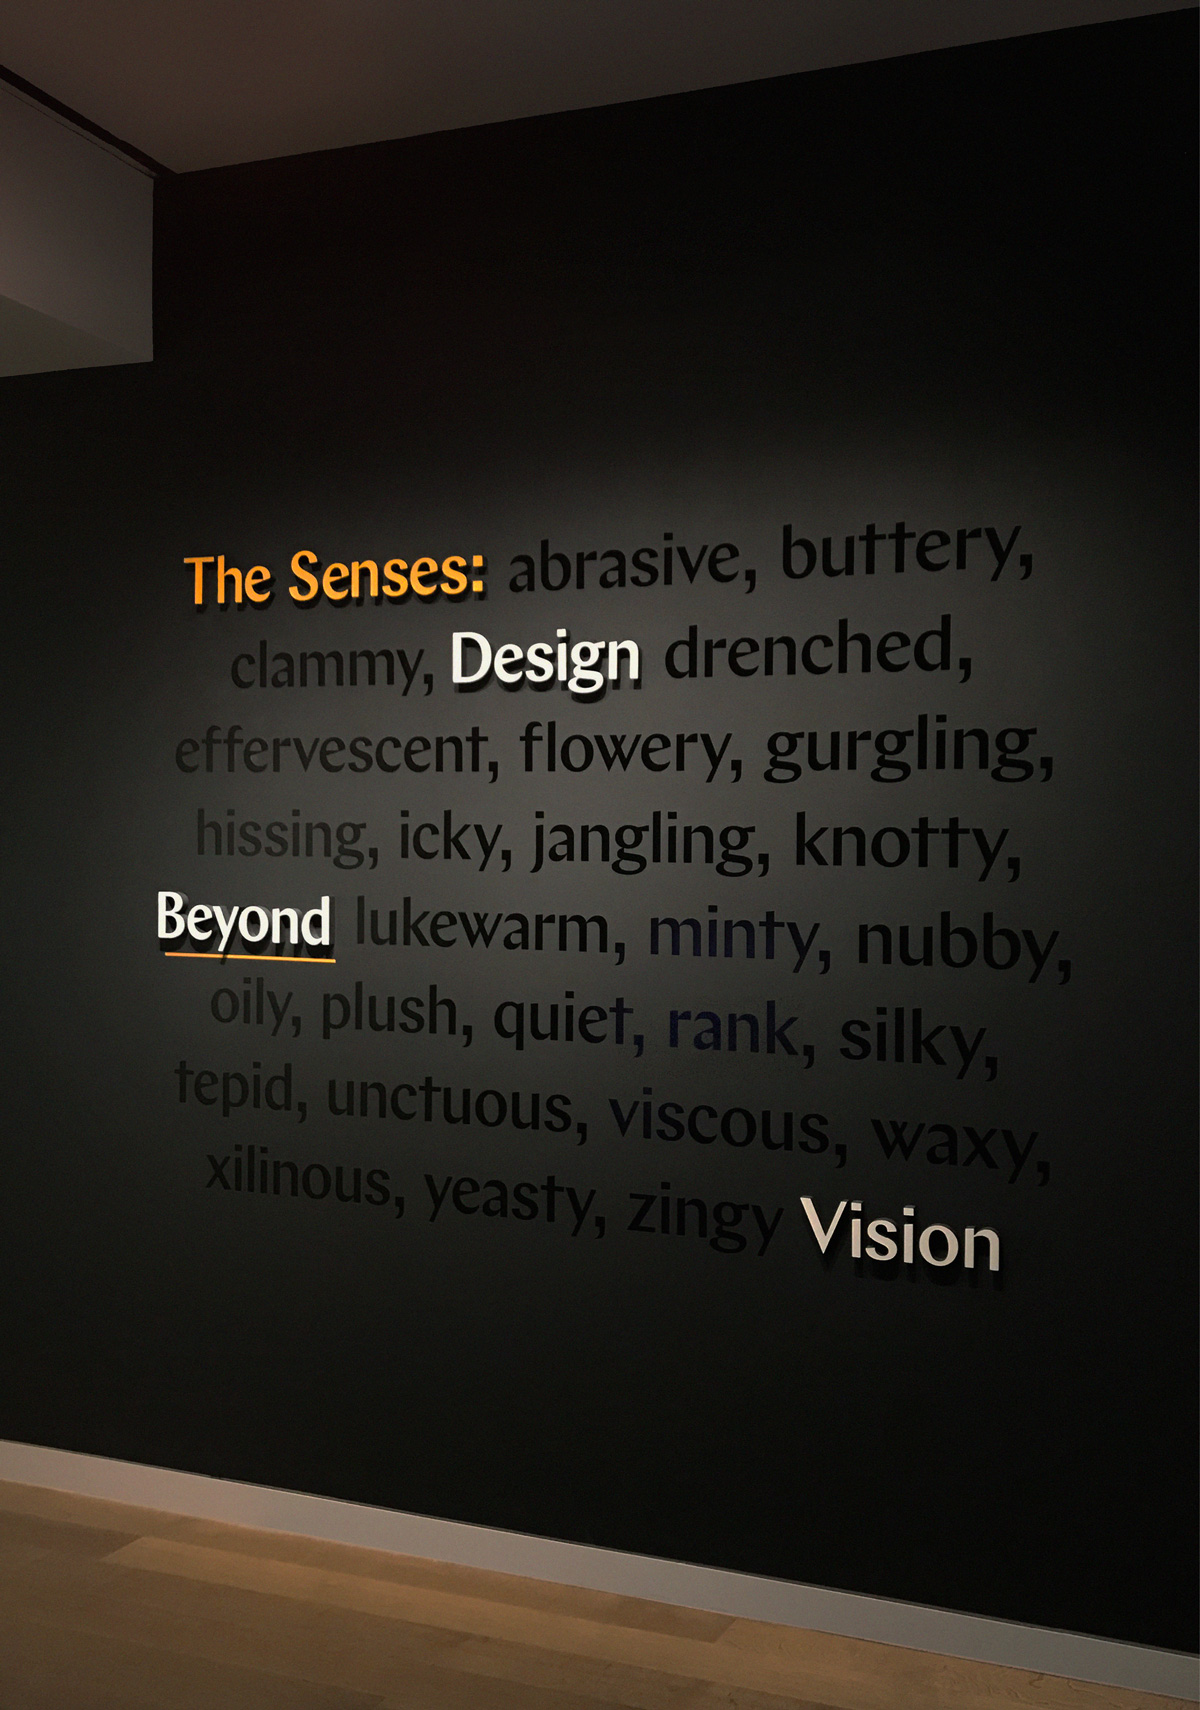 TheSenses_Exhibit_4.jpg